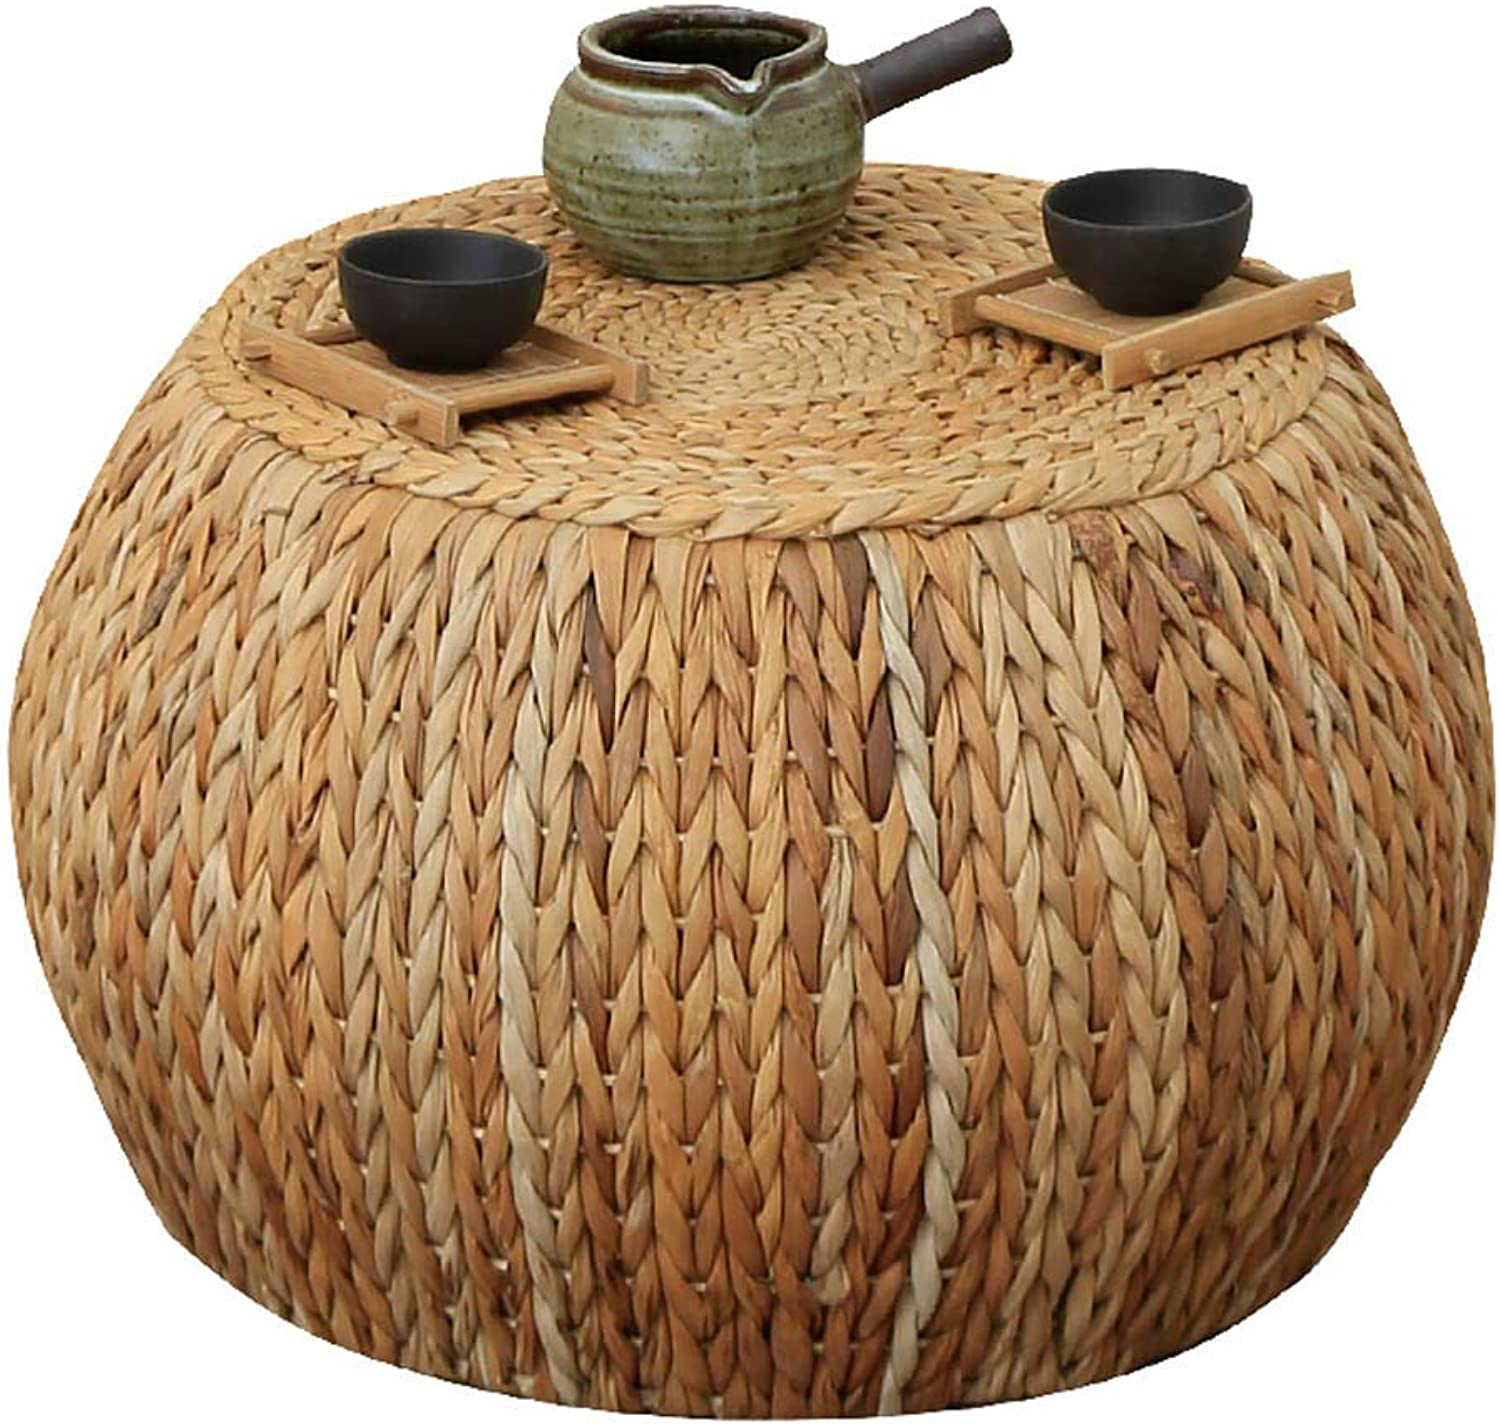 Rattan Coffee Table Stool Round Footstool, Rustic Style Straw Sofa Bench Simple shoes Bench, Suitable for Living Room, Bedroom, Courtyard